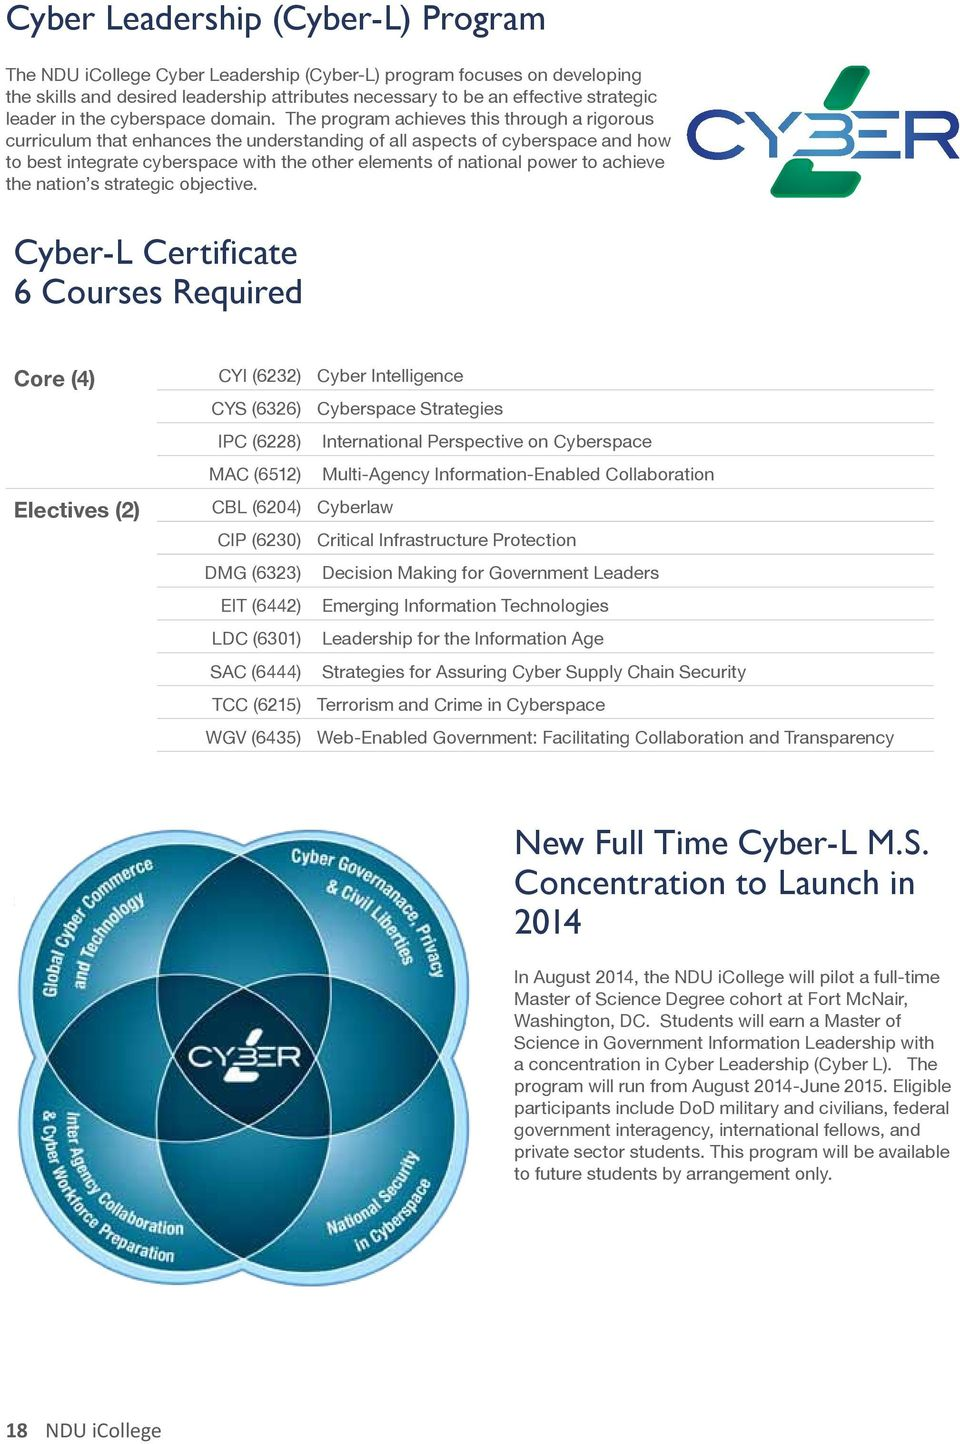 The program achieves this through a rigorous curriculum that enhances the understanding of all aspects of cyberspace and how to best integrate cyberspace with the other elements of national power to